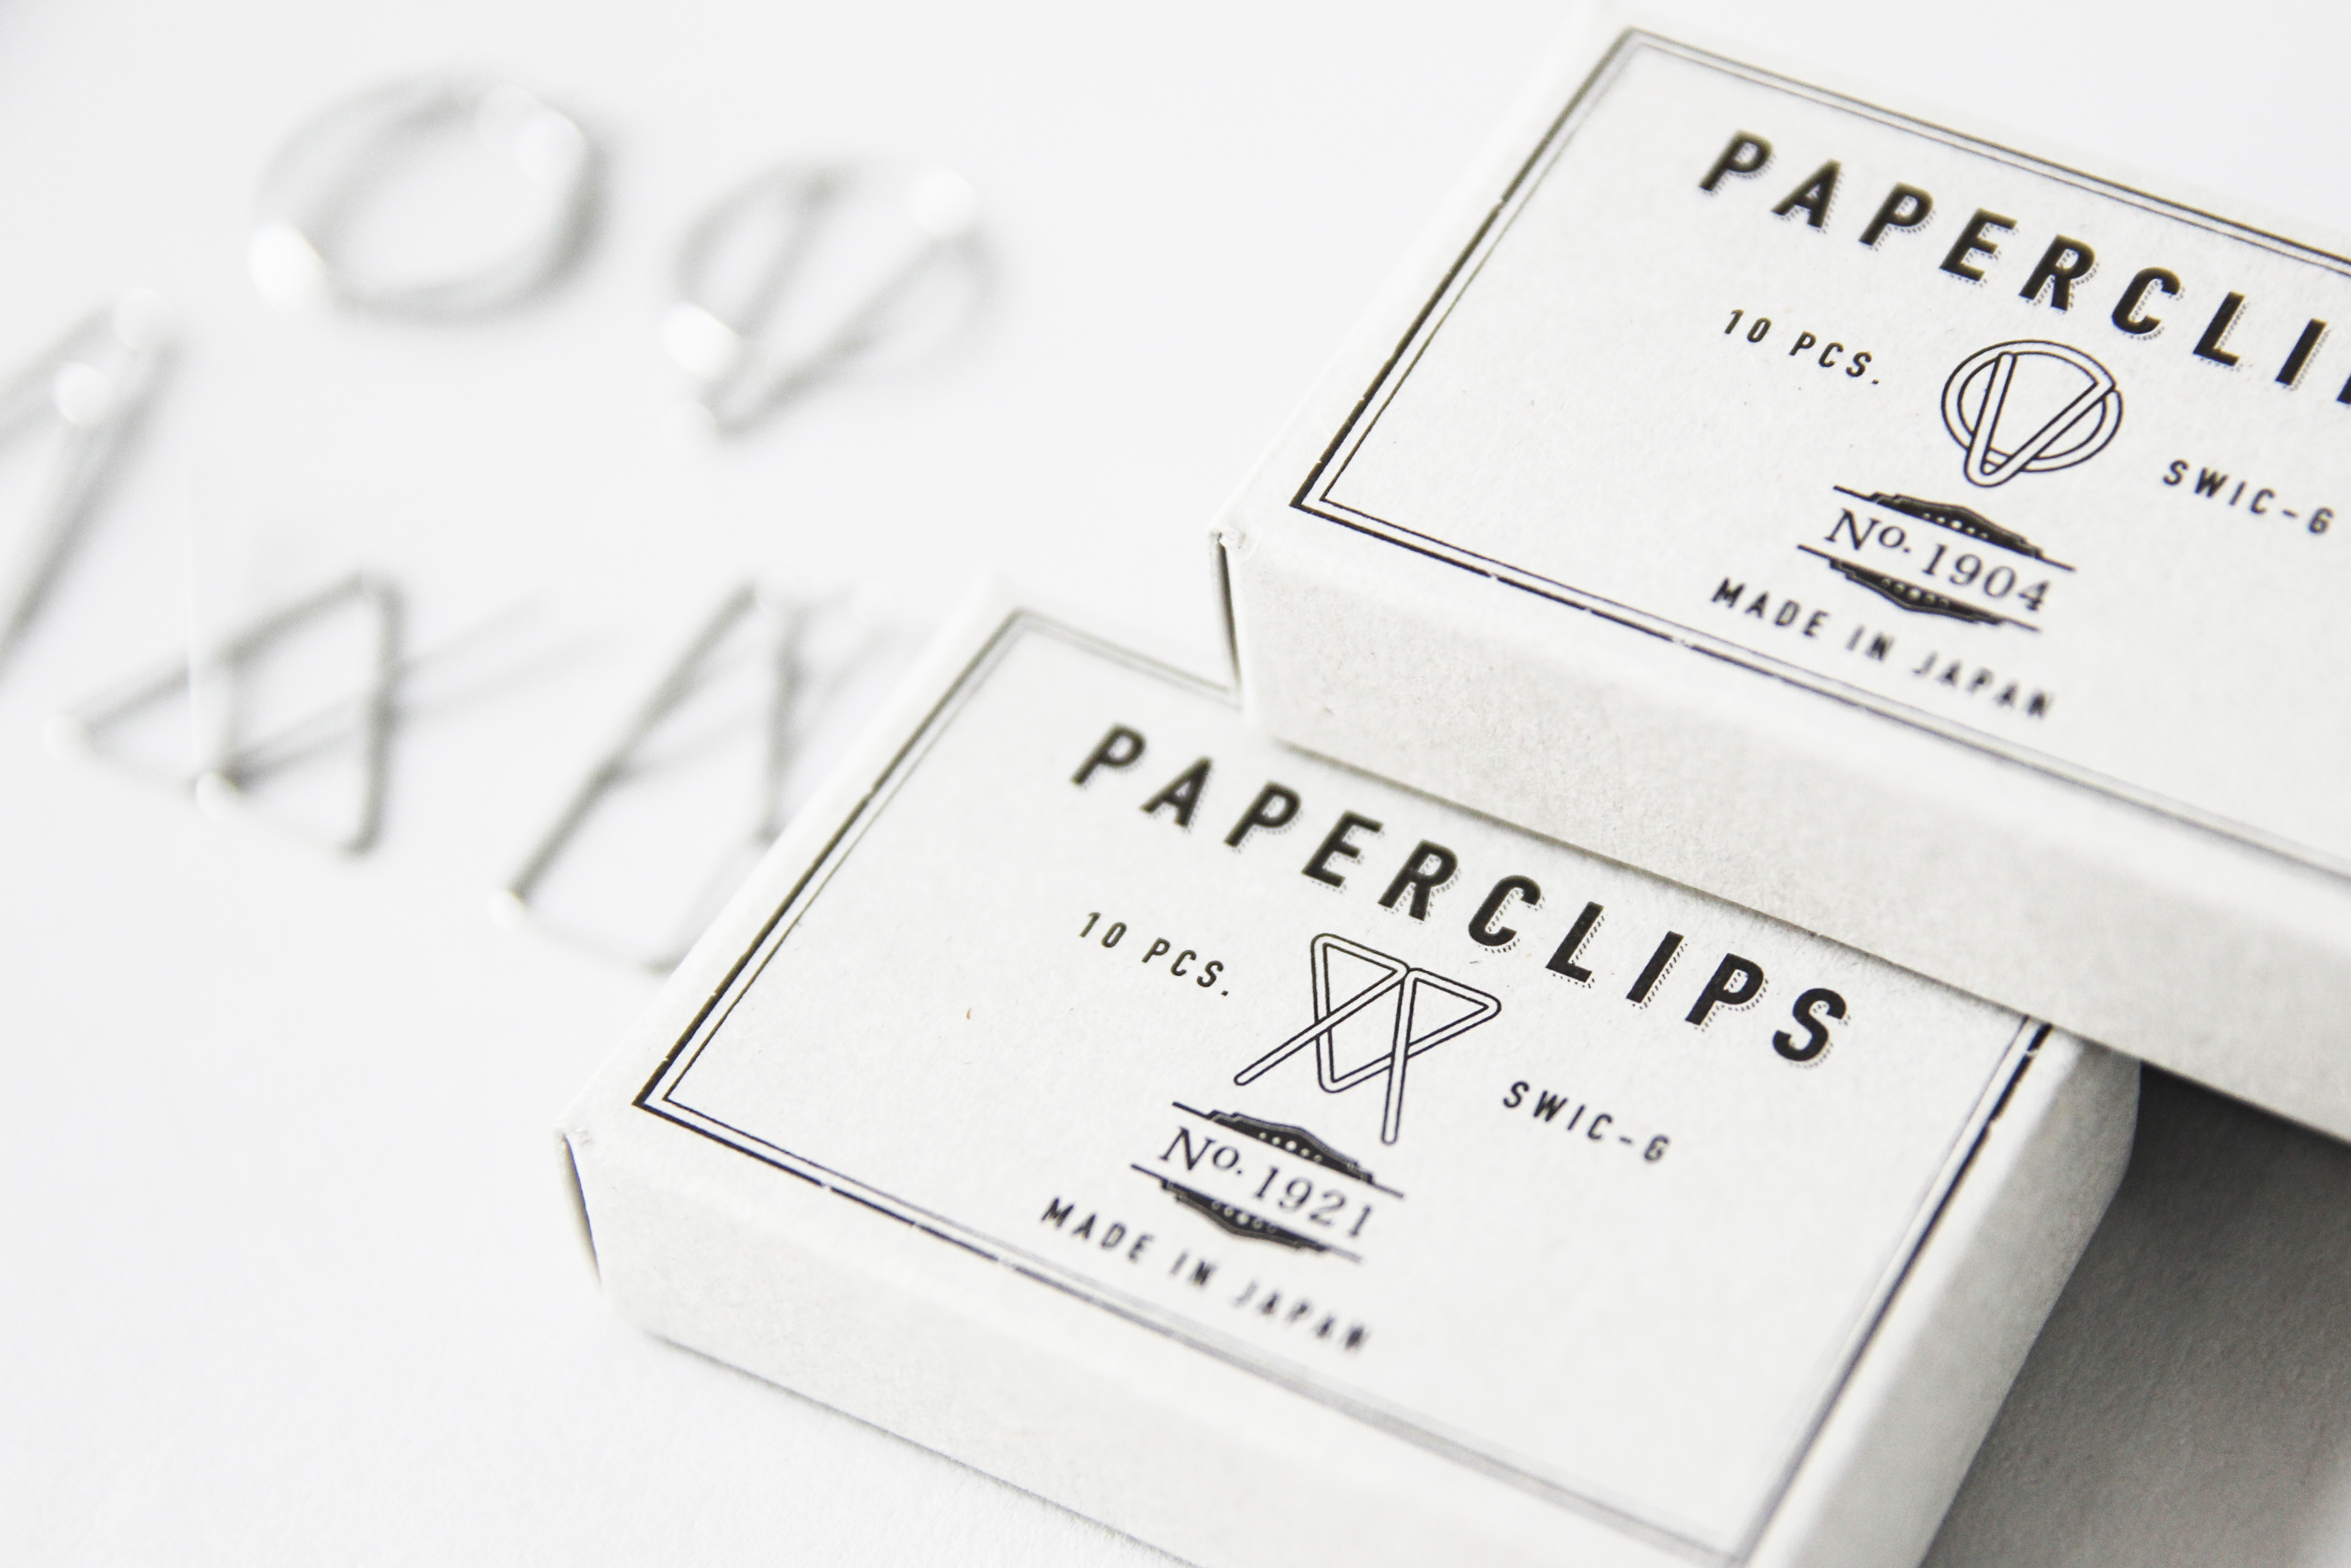 paperclips_2.jpg